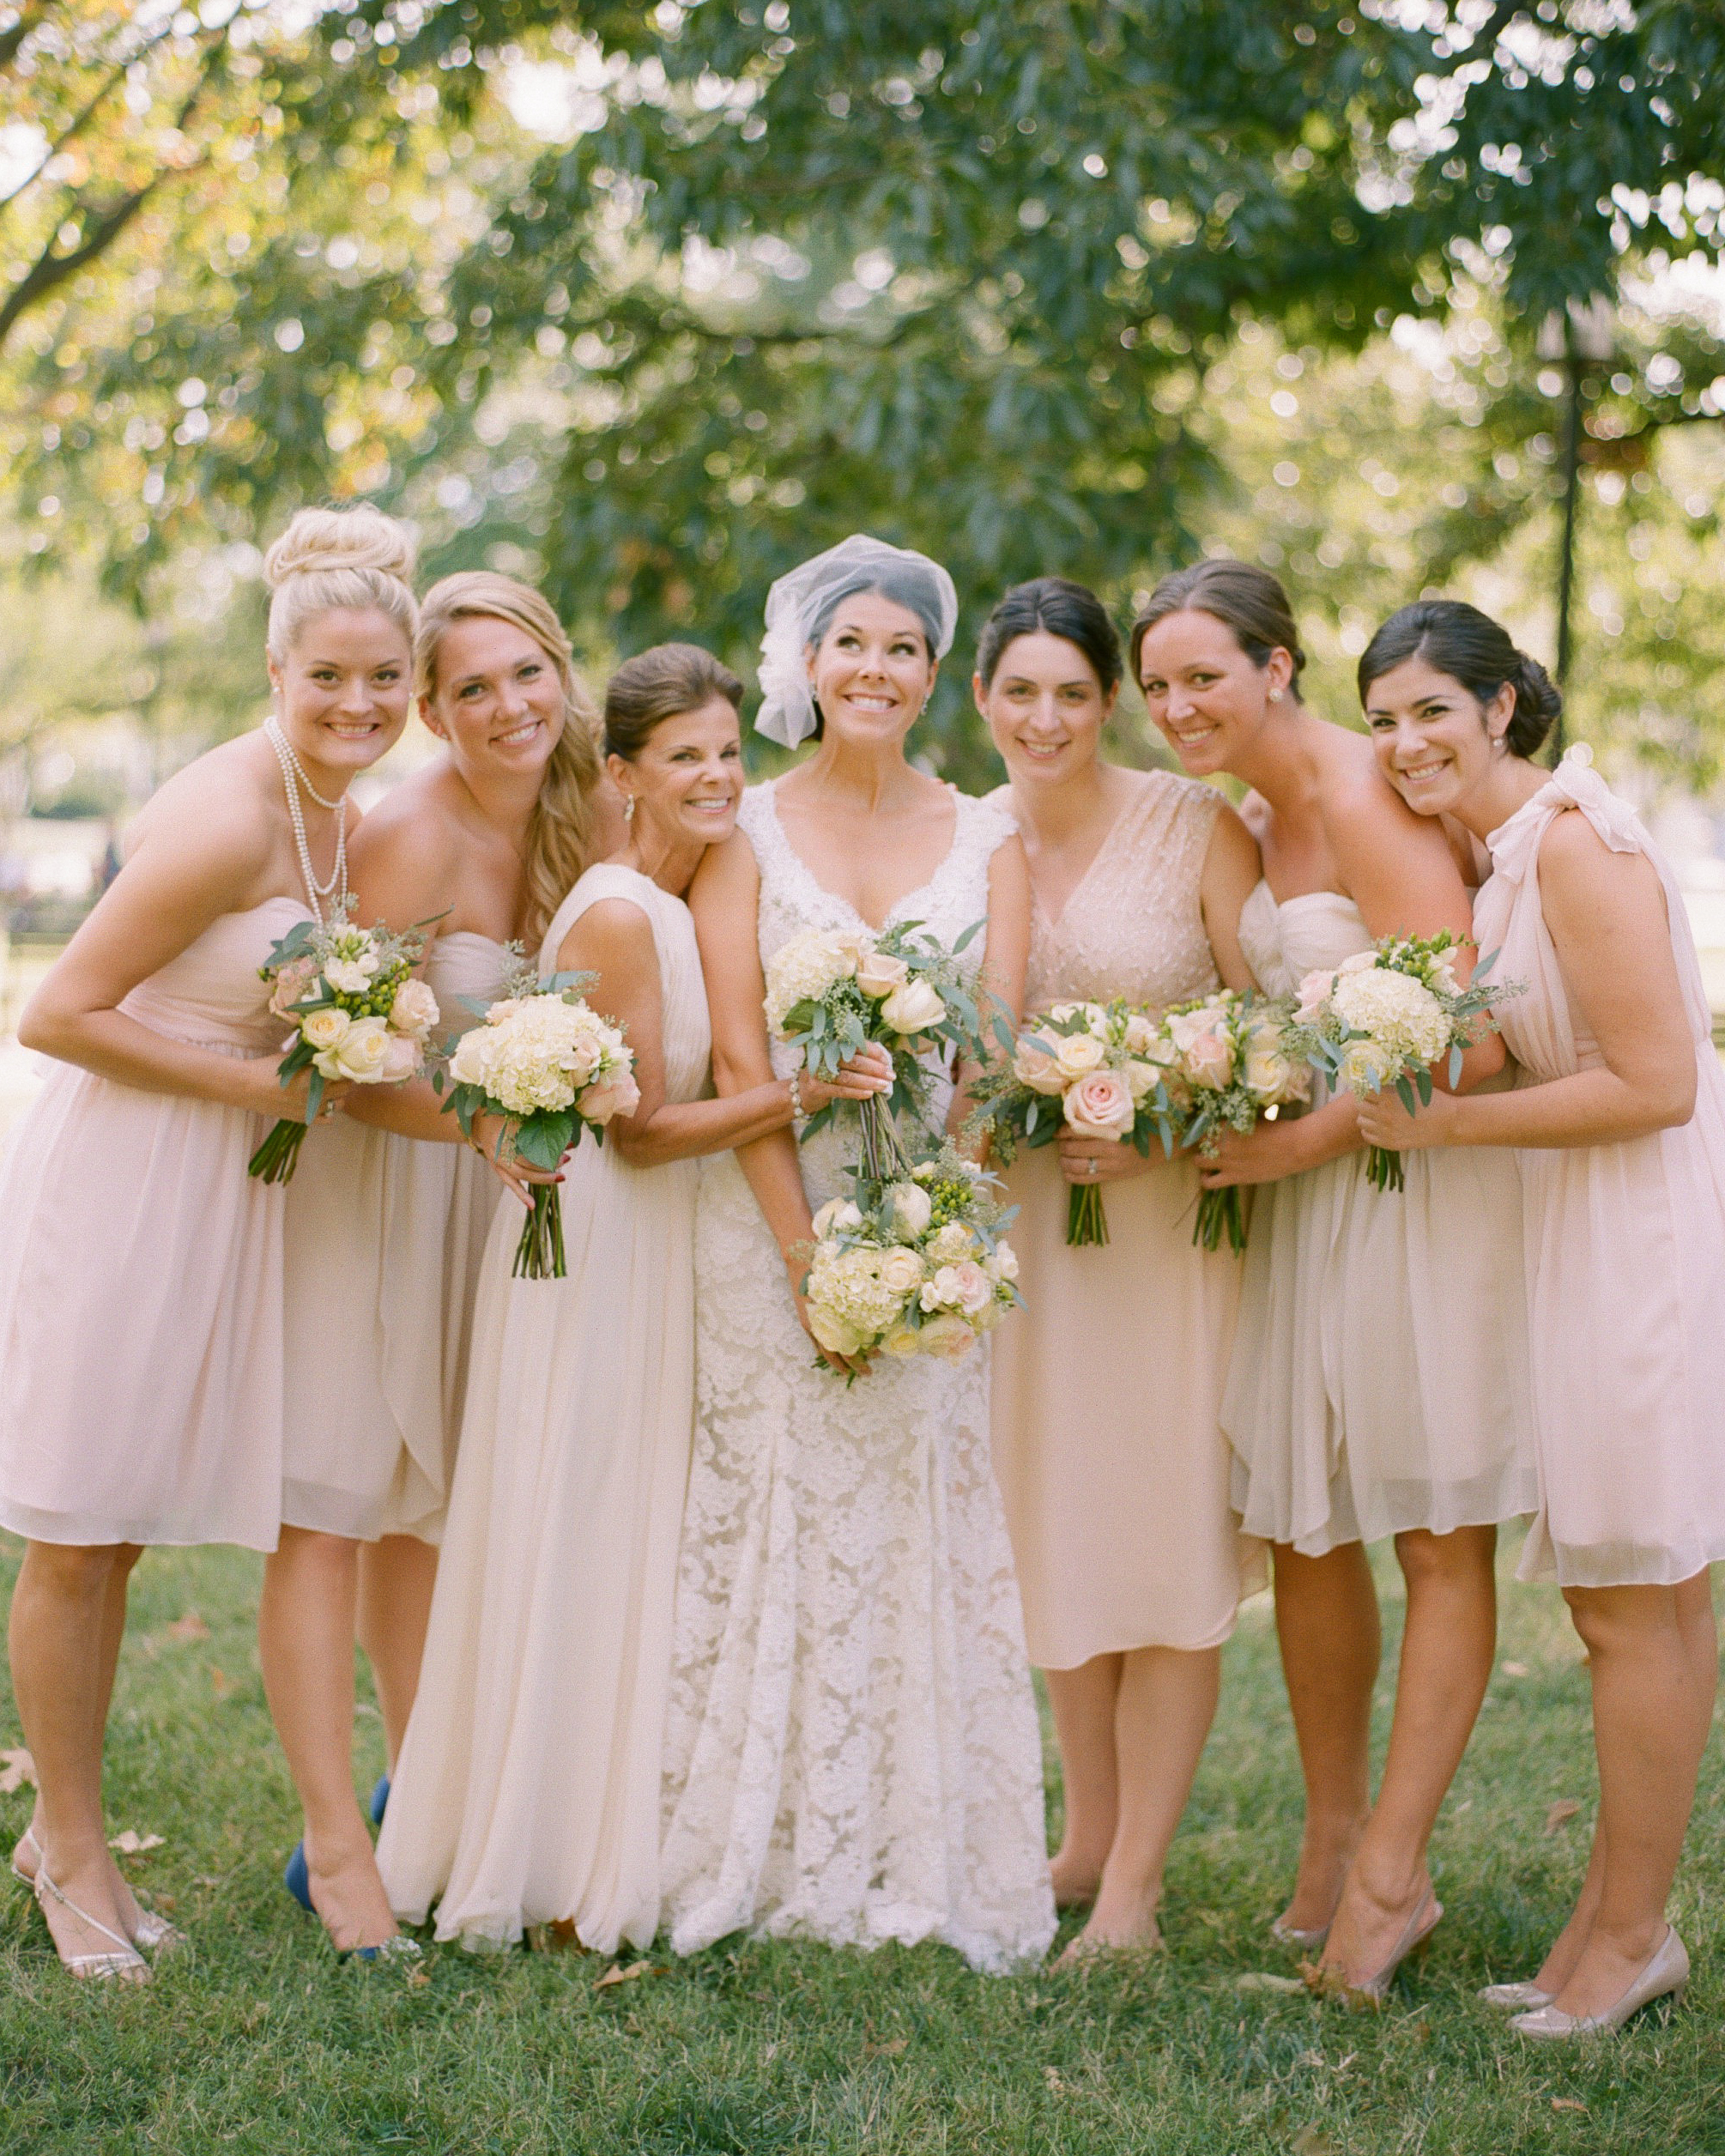 Blushing Bridesmaids